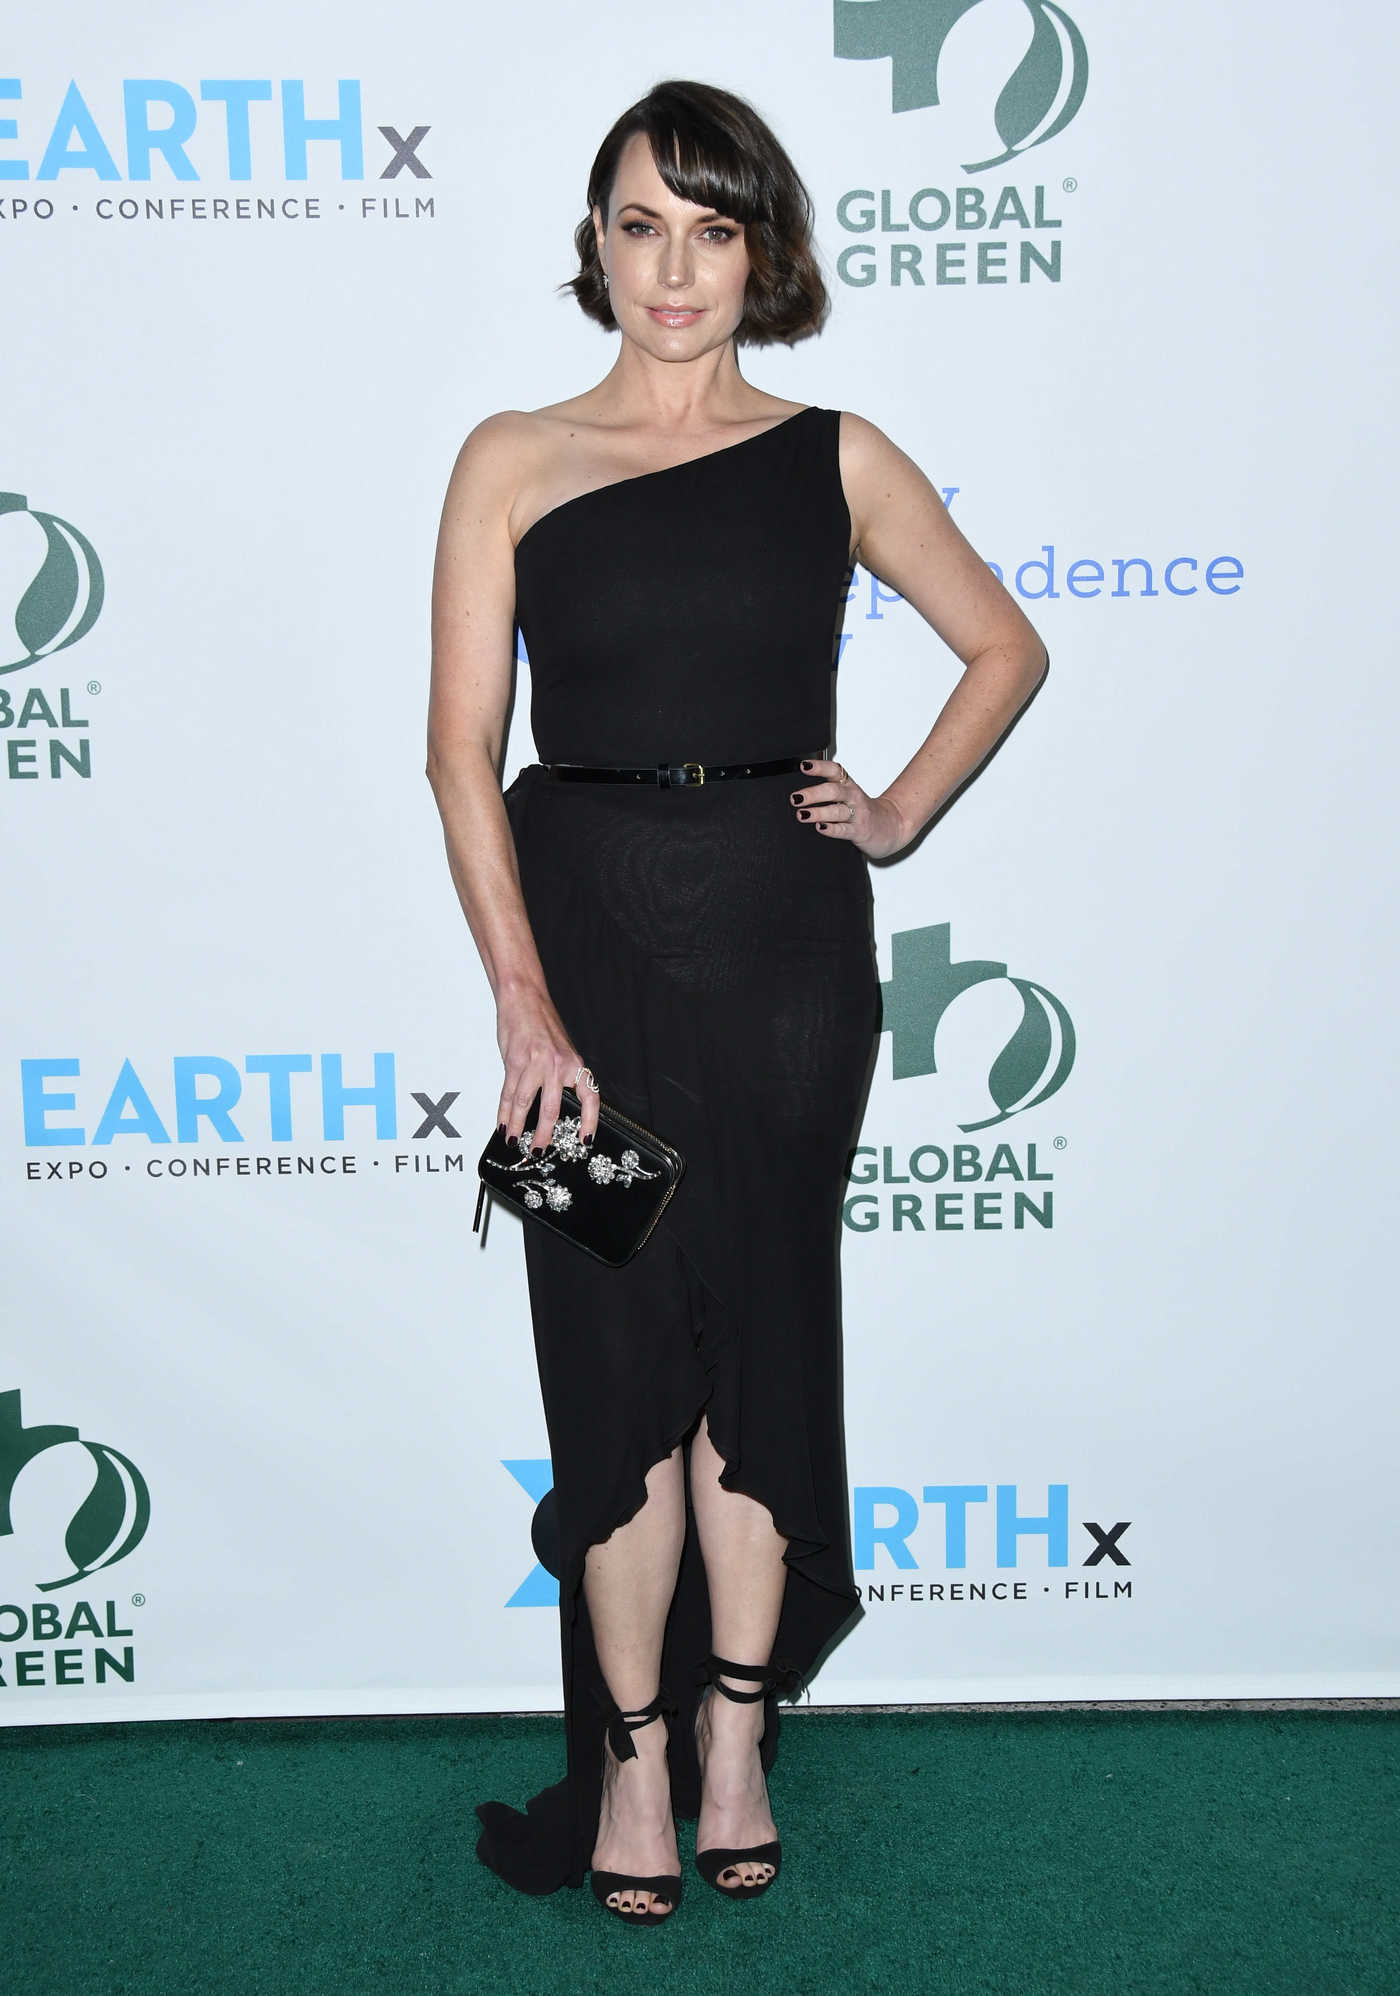 Julie Ann Emery at the 15th Annual Global Green Pre-Oscar Gala in Los Angeles 02/28/2018